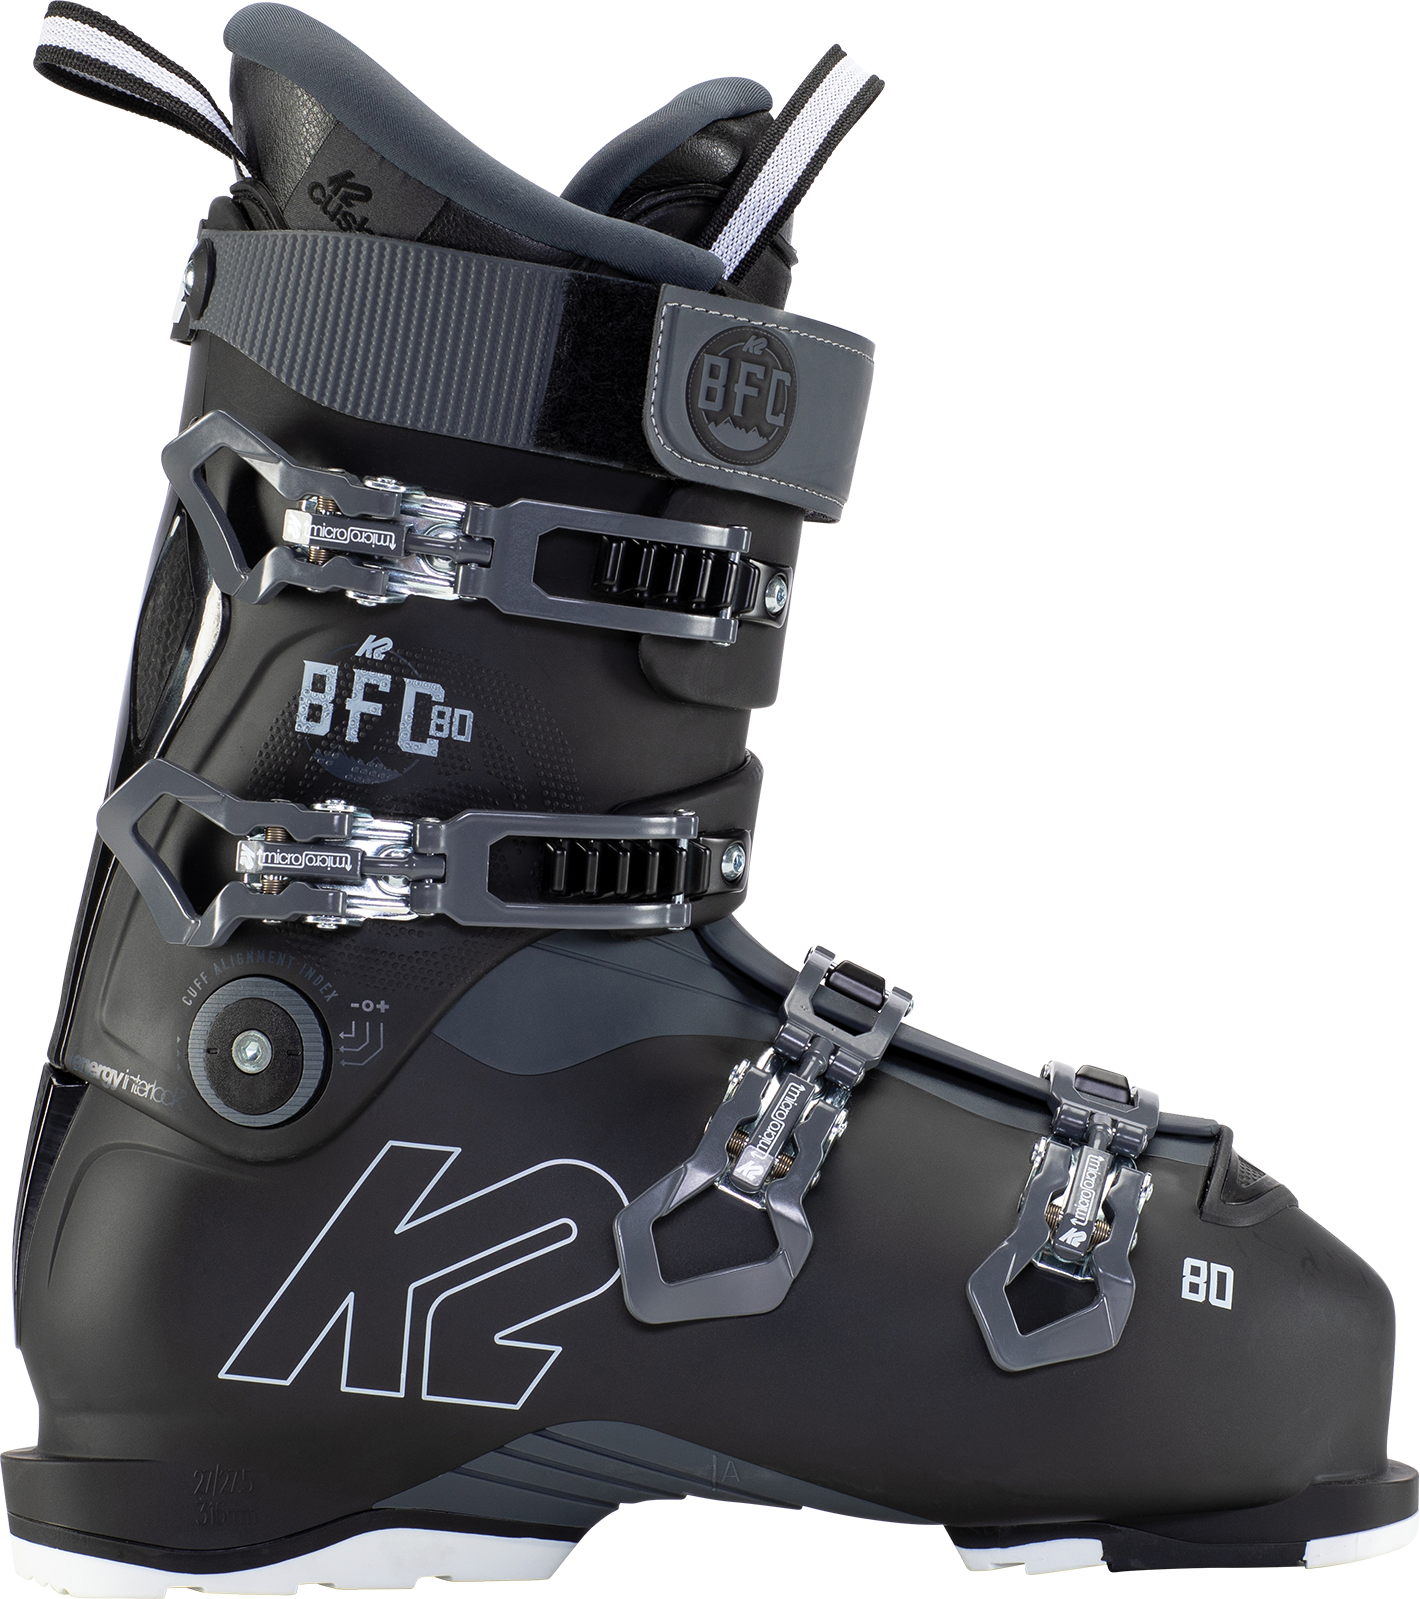 2021 K2 BFC 80 Gripwalk Men's Ski Boots